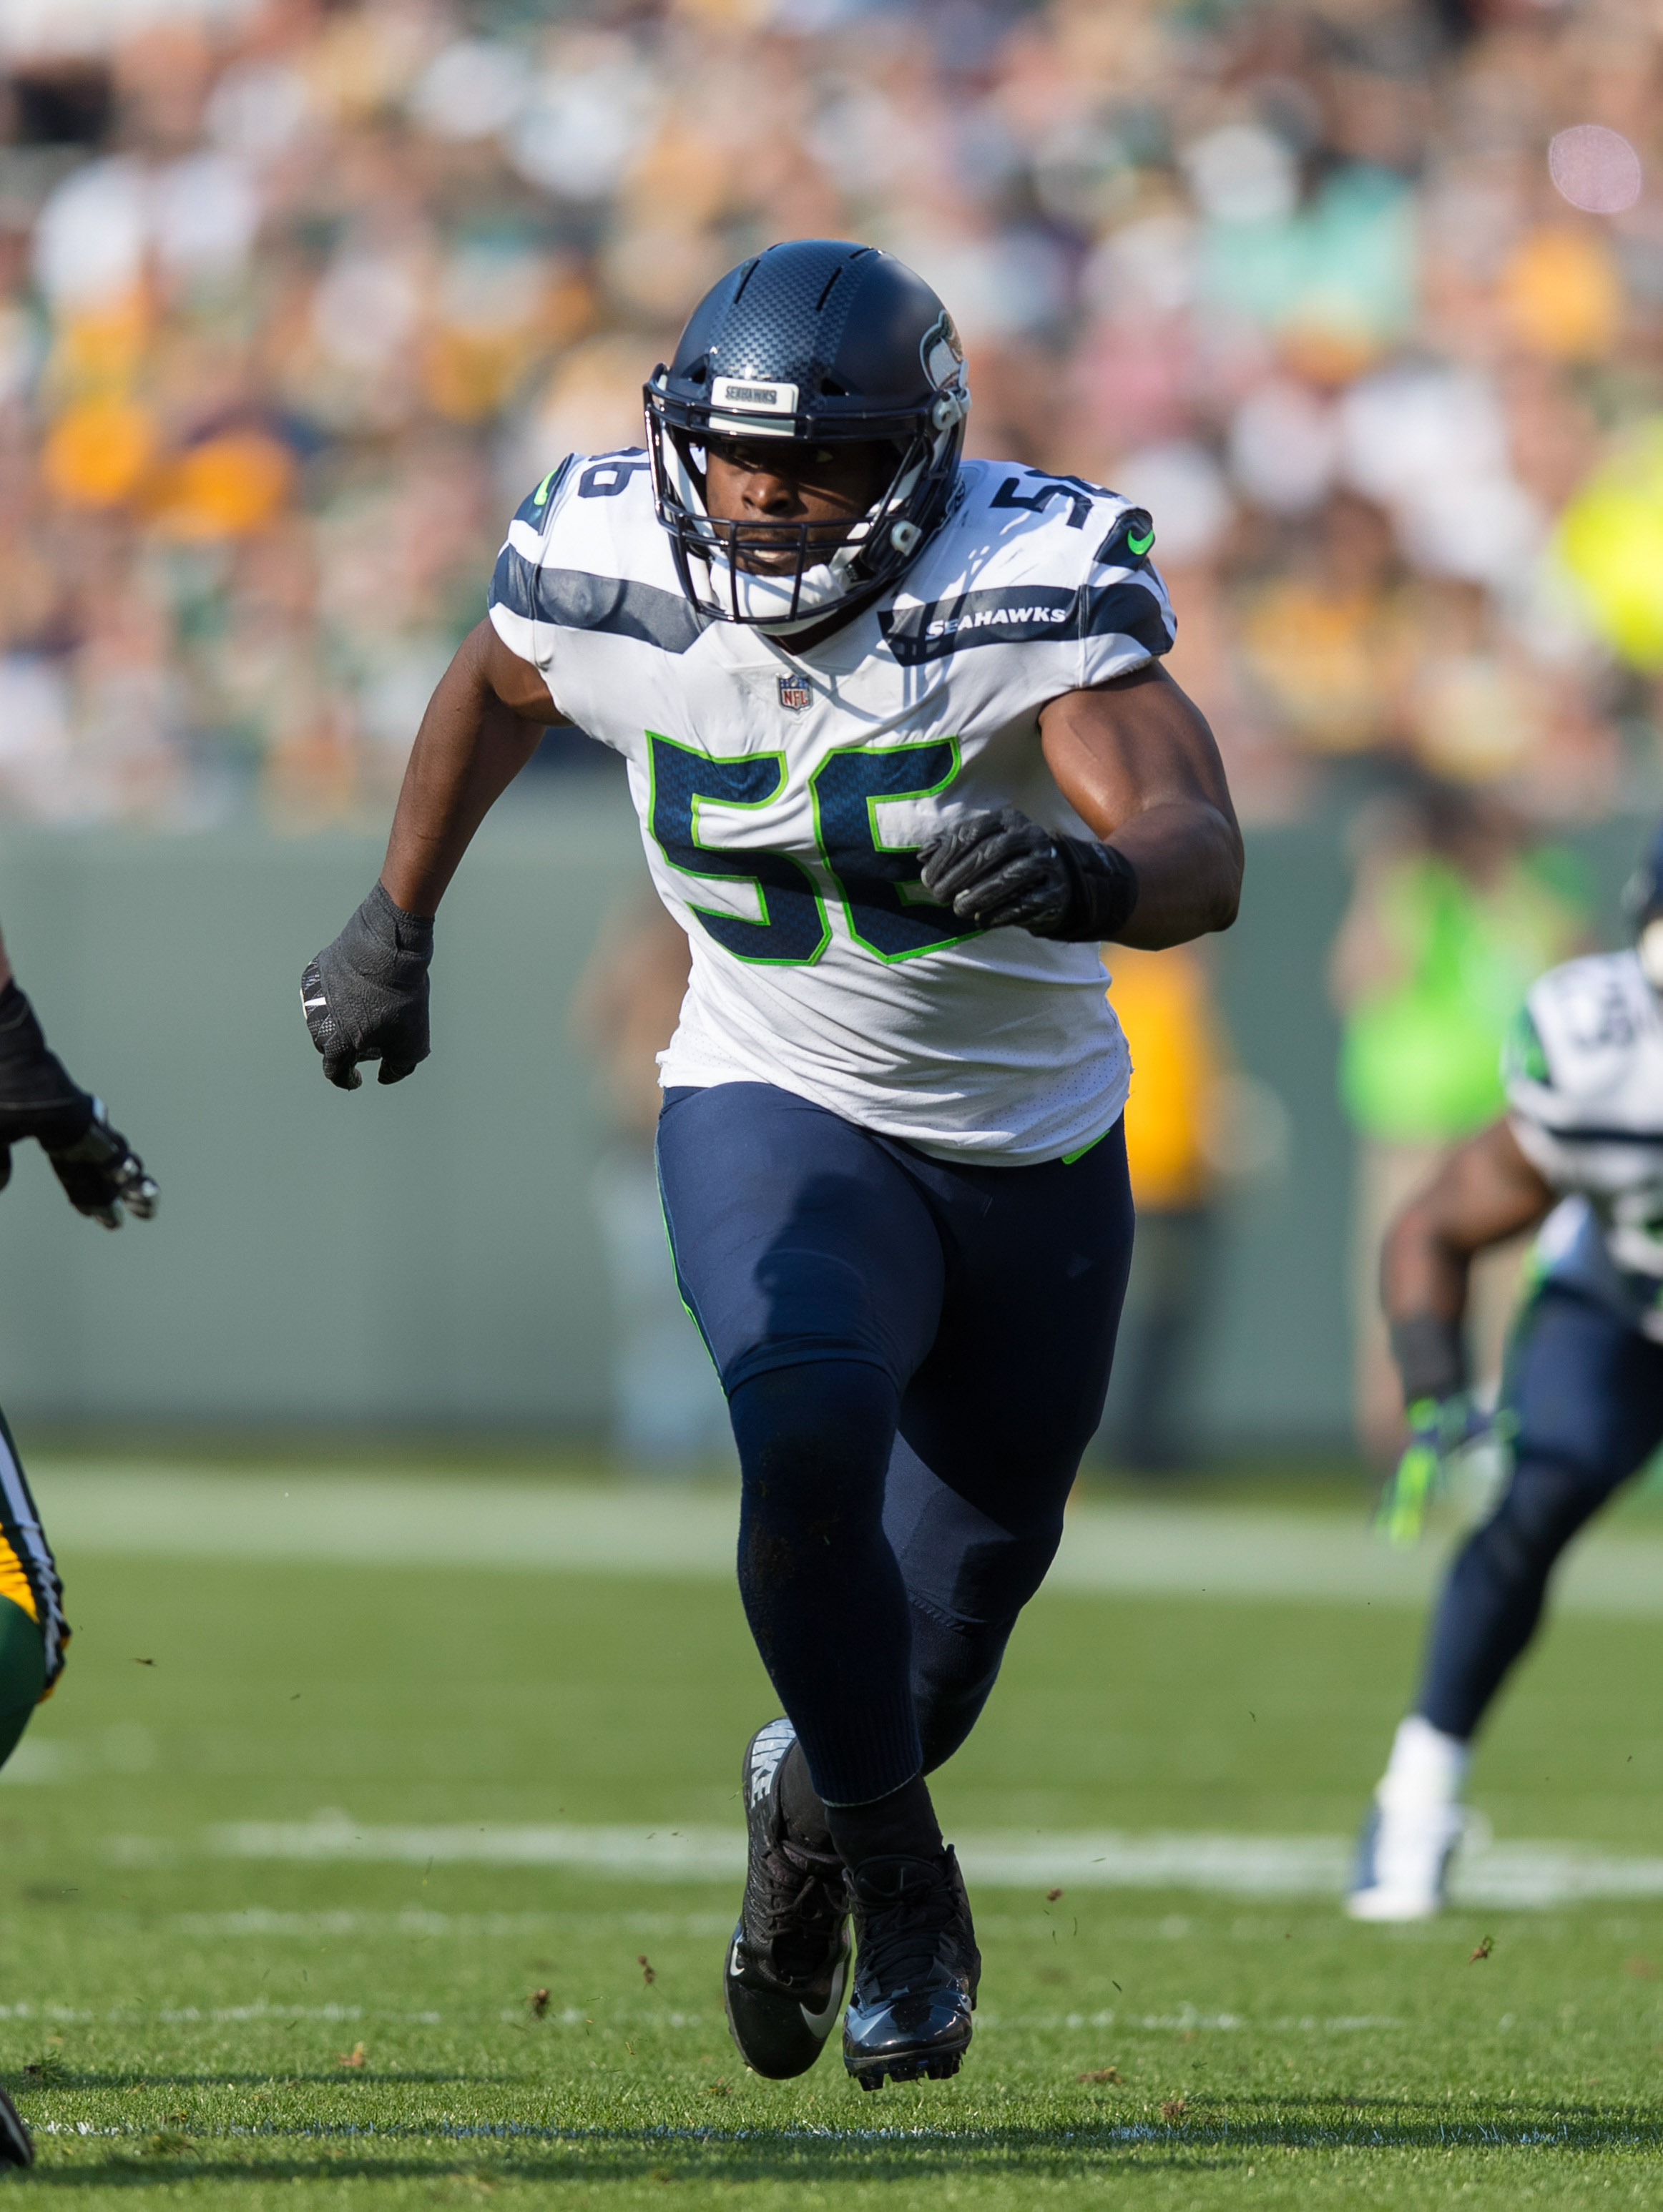 Seahawks To Place Cliff Avril IR